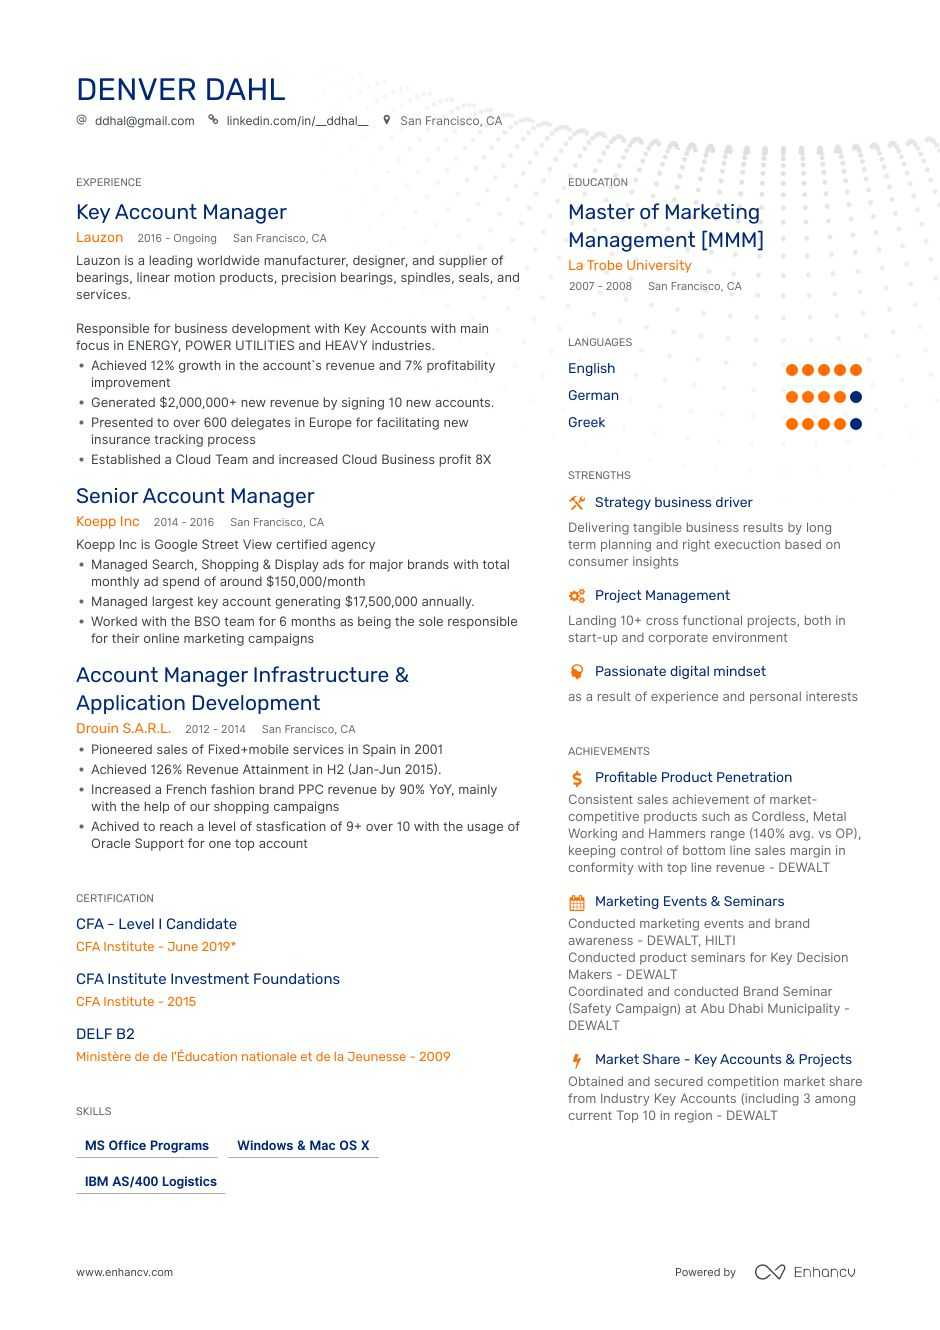 account manager resume ultimate writing guide with samples candidate on generated Resume Cfa Candidate On Resume